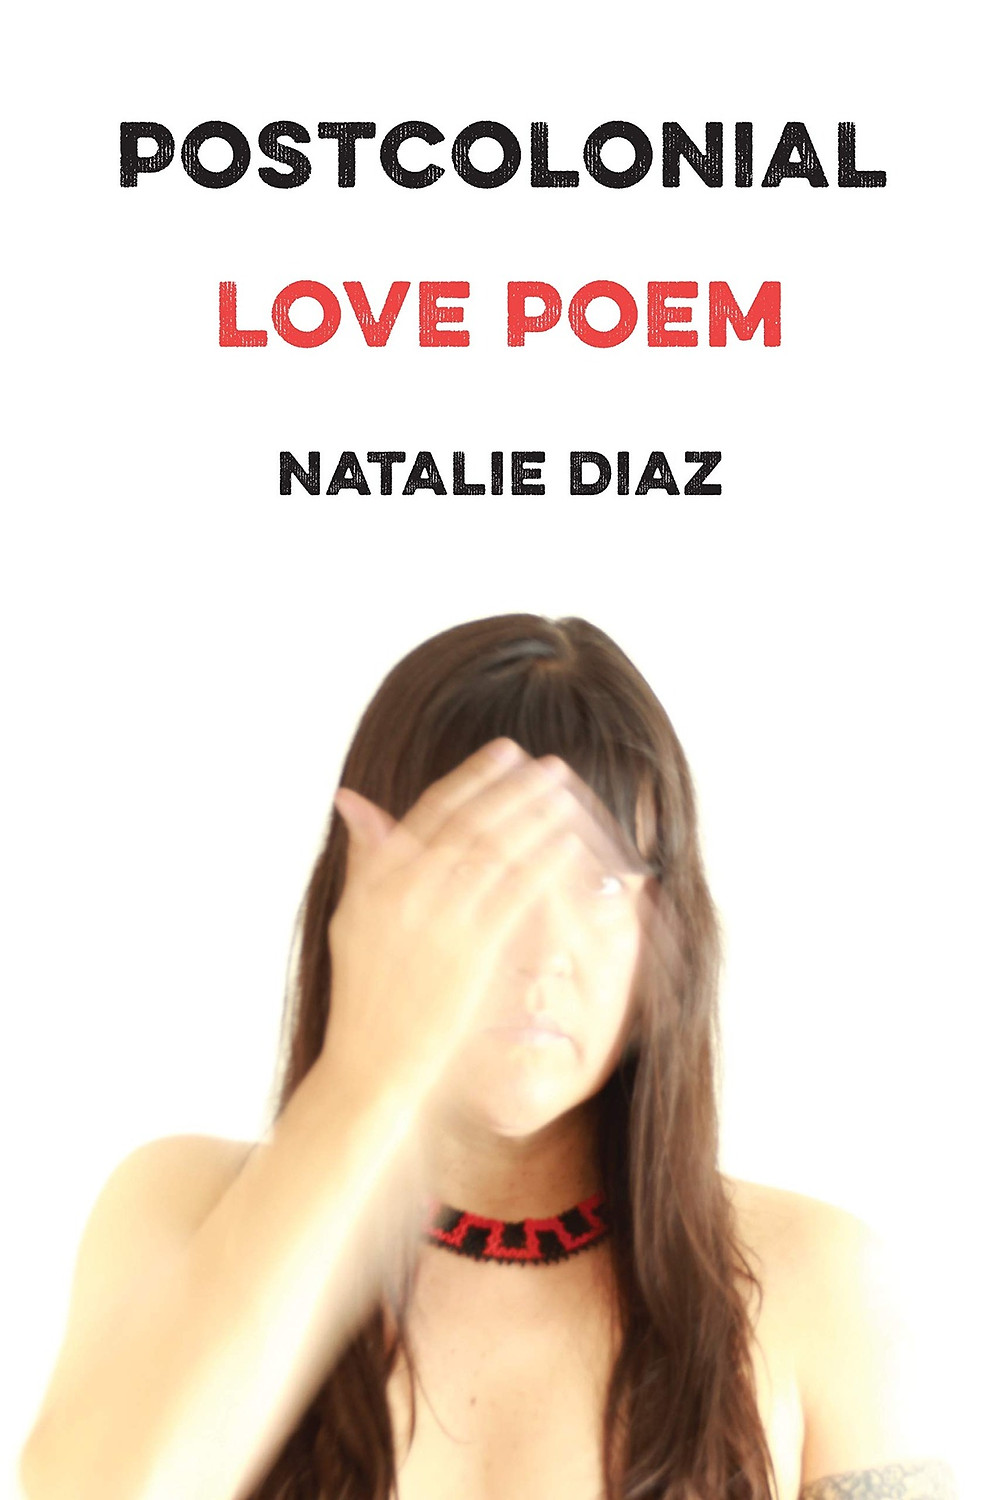 Natalie Diaz's highly anticipated follow-up to When My Brother Was an Aztec, winner of an American Book Award.   Postcolonial Love Poem: Poems Natalie Diaz (Author) The Book Slut book reviews, thebookslut